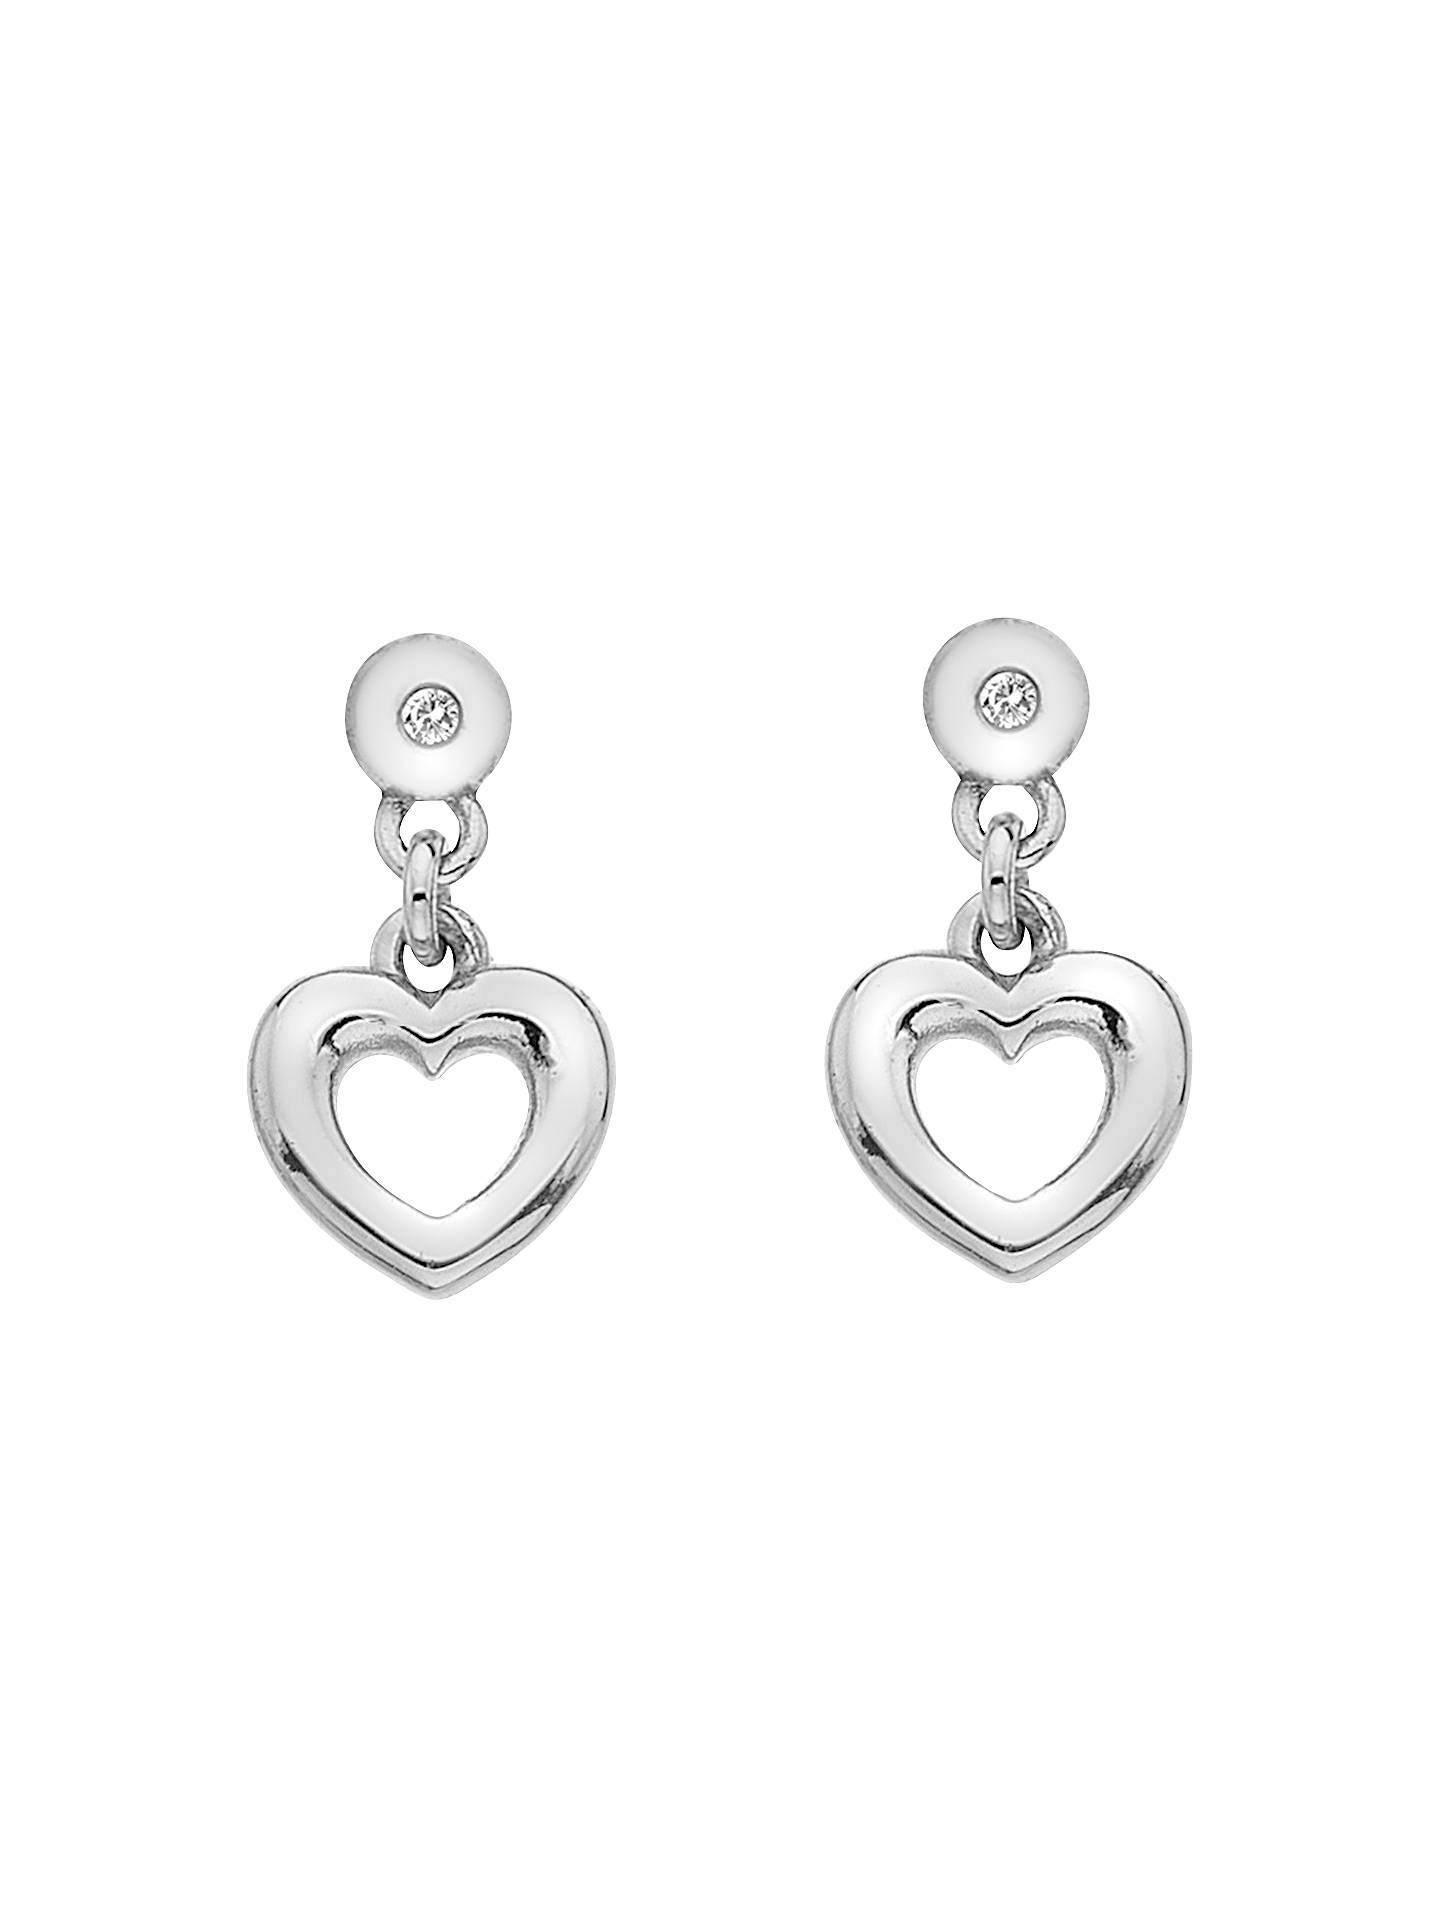 Hot Diamonds Heart Drop Earrings Silver Online At Johnlewis